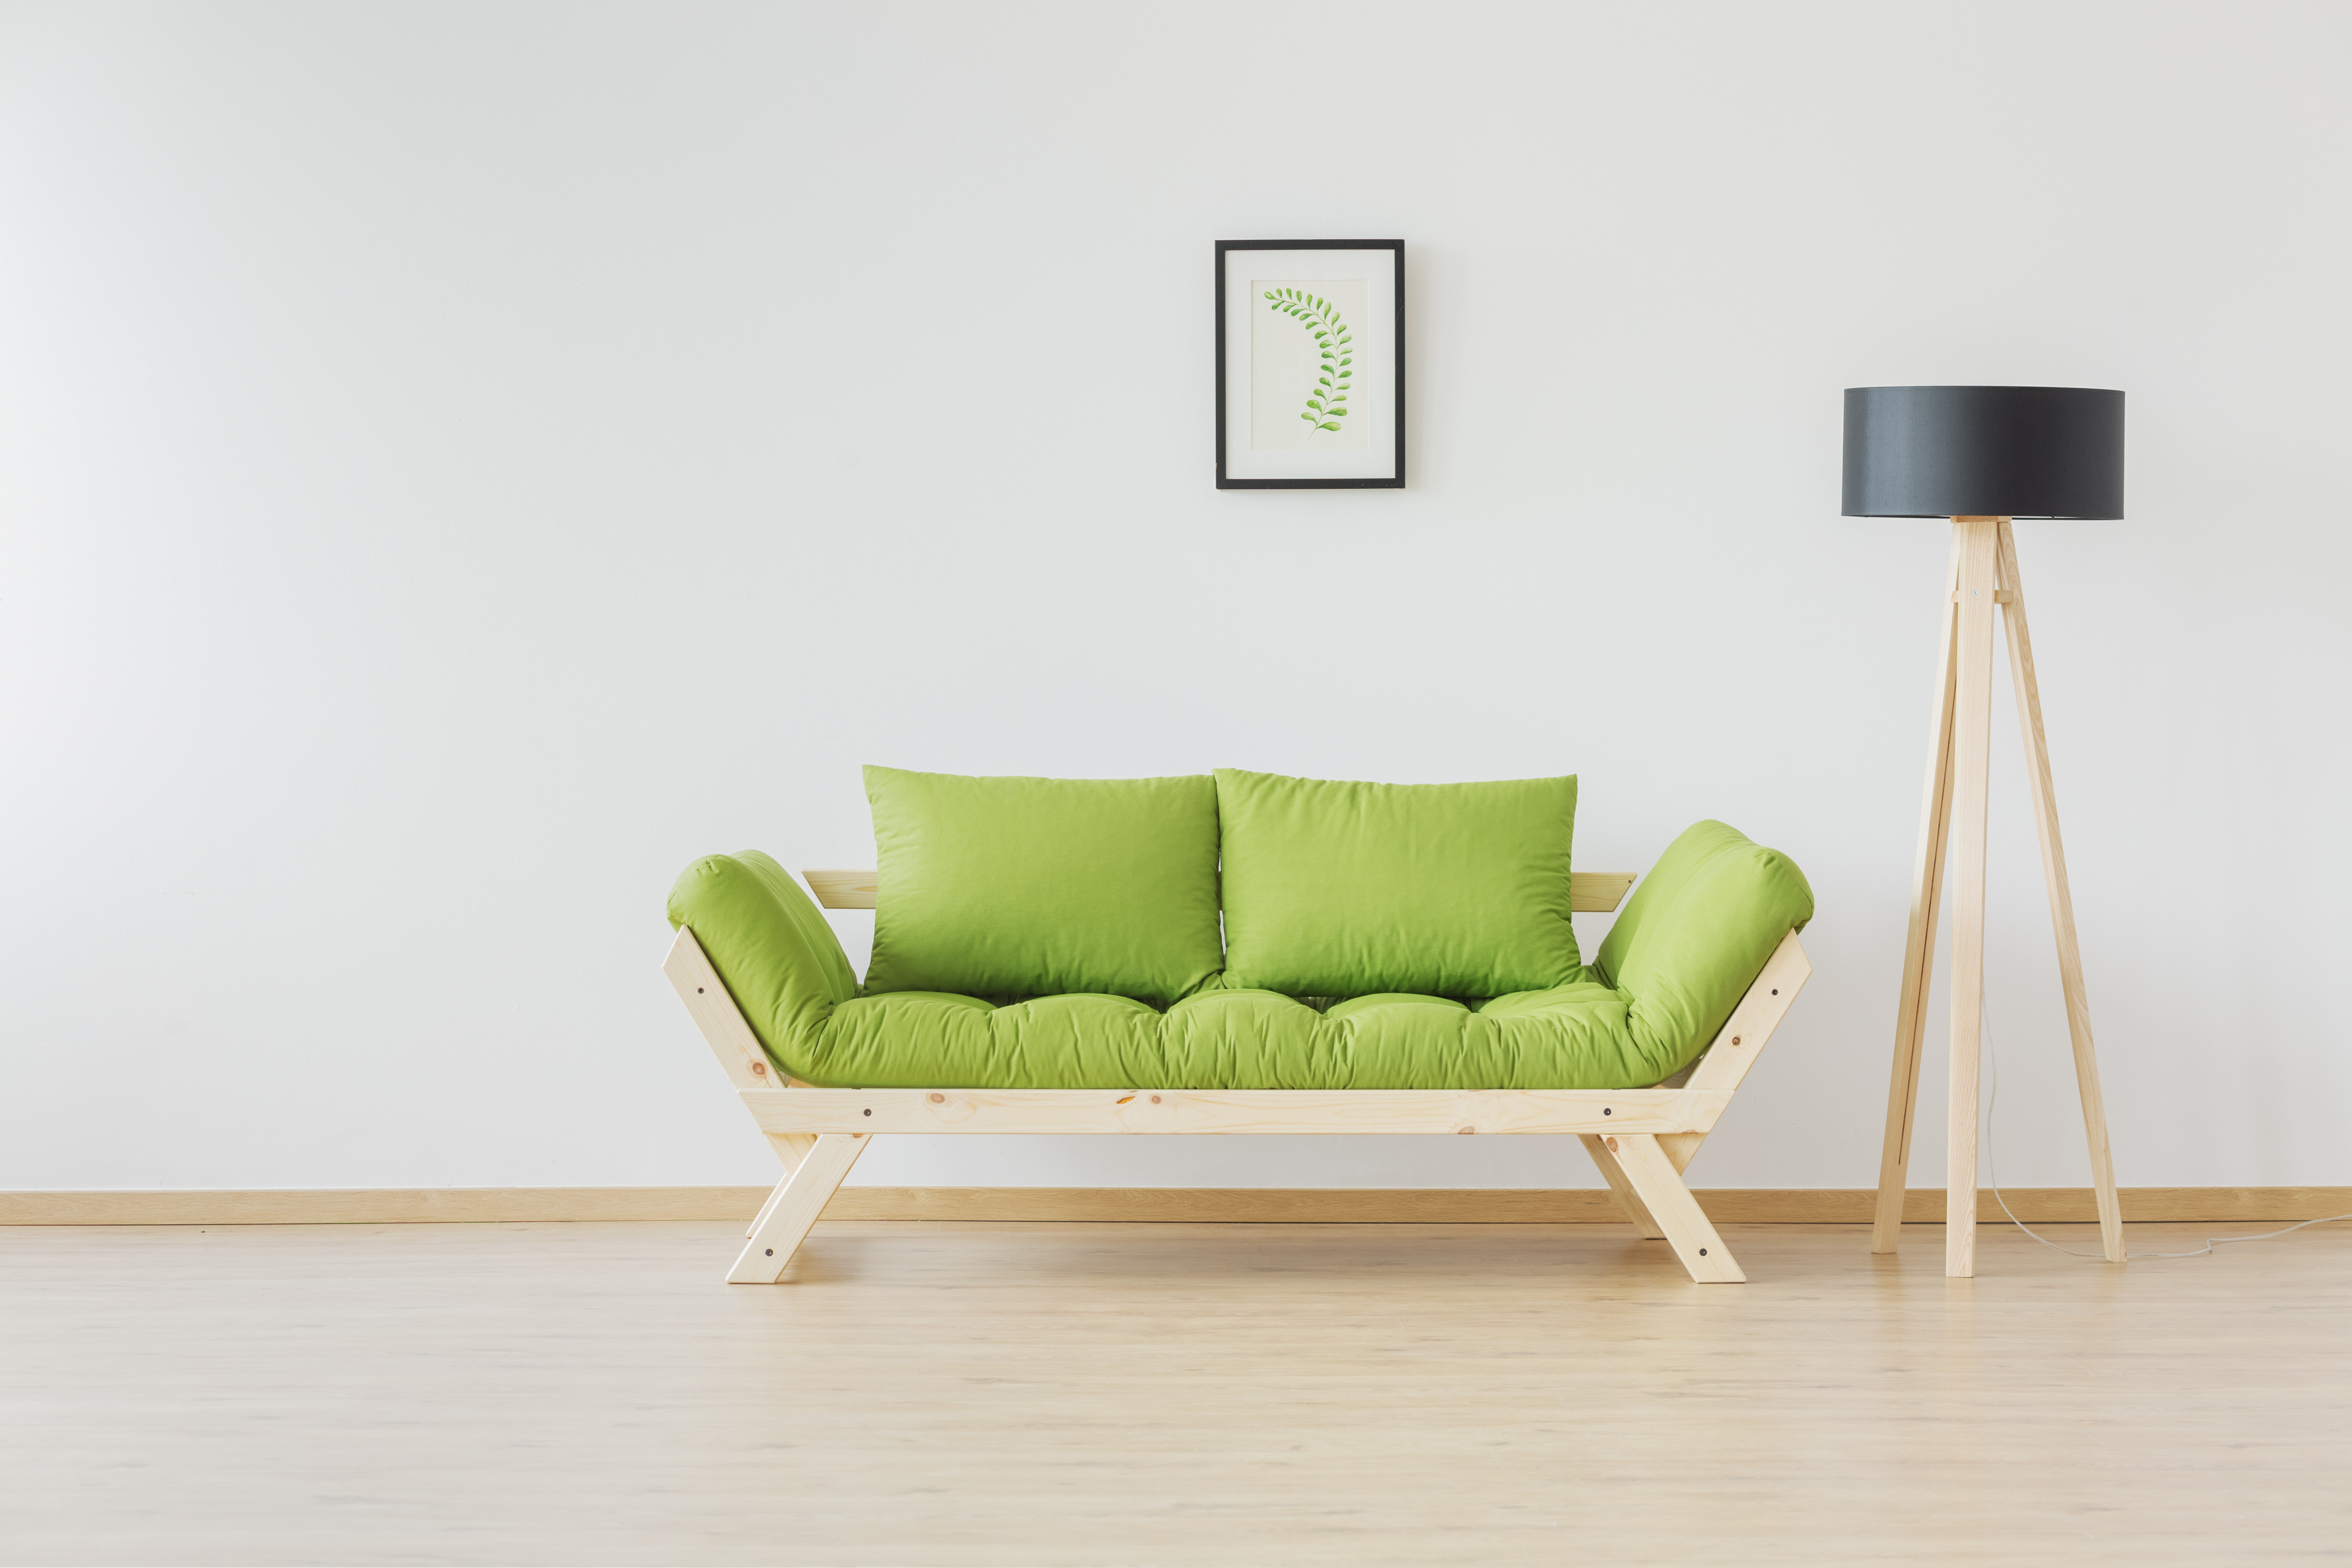 Furniture Modeling & Rendering